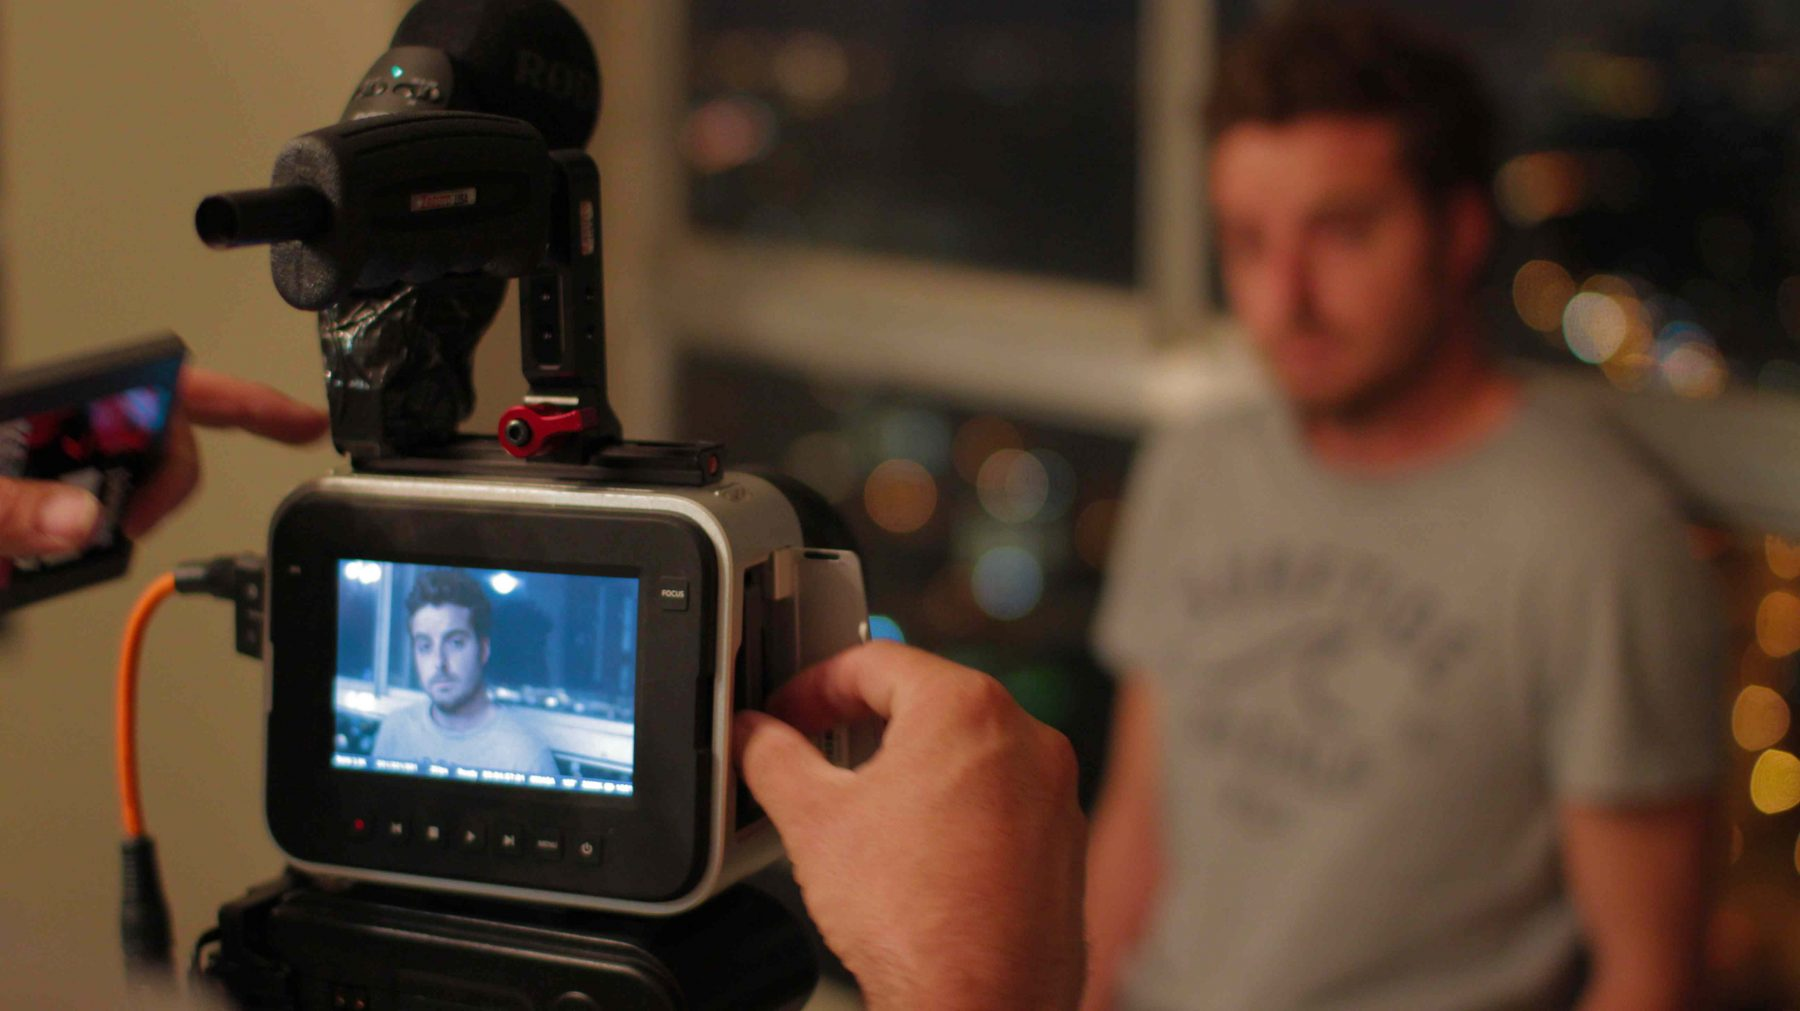 South Africa 1:Shooting a documentary short with the BlackMagic ...